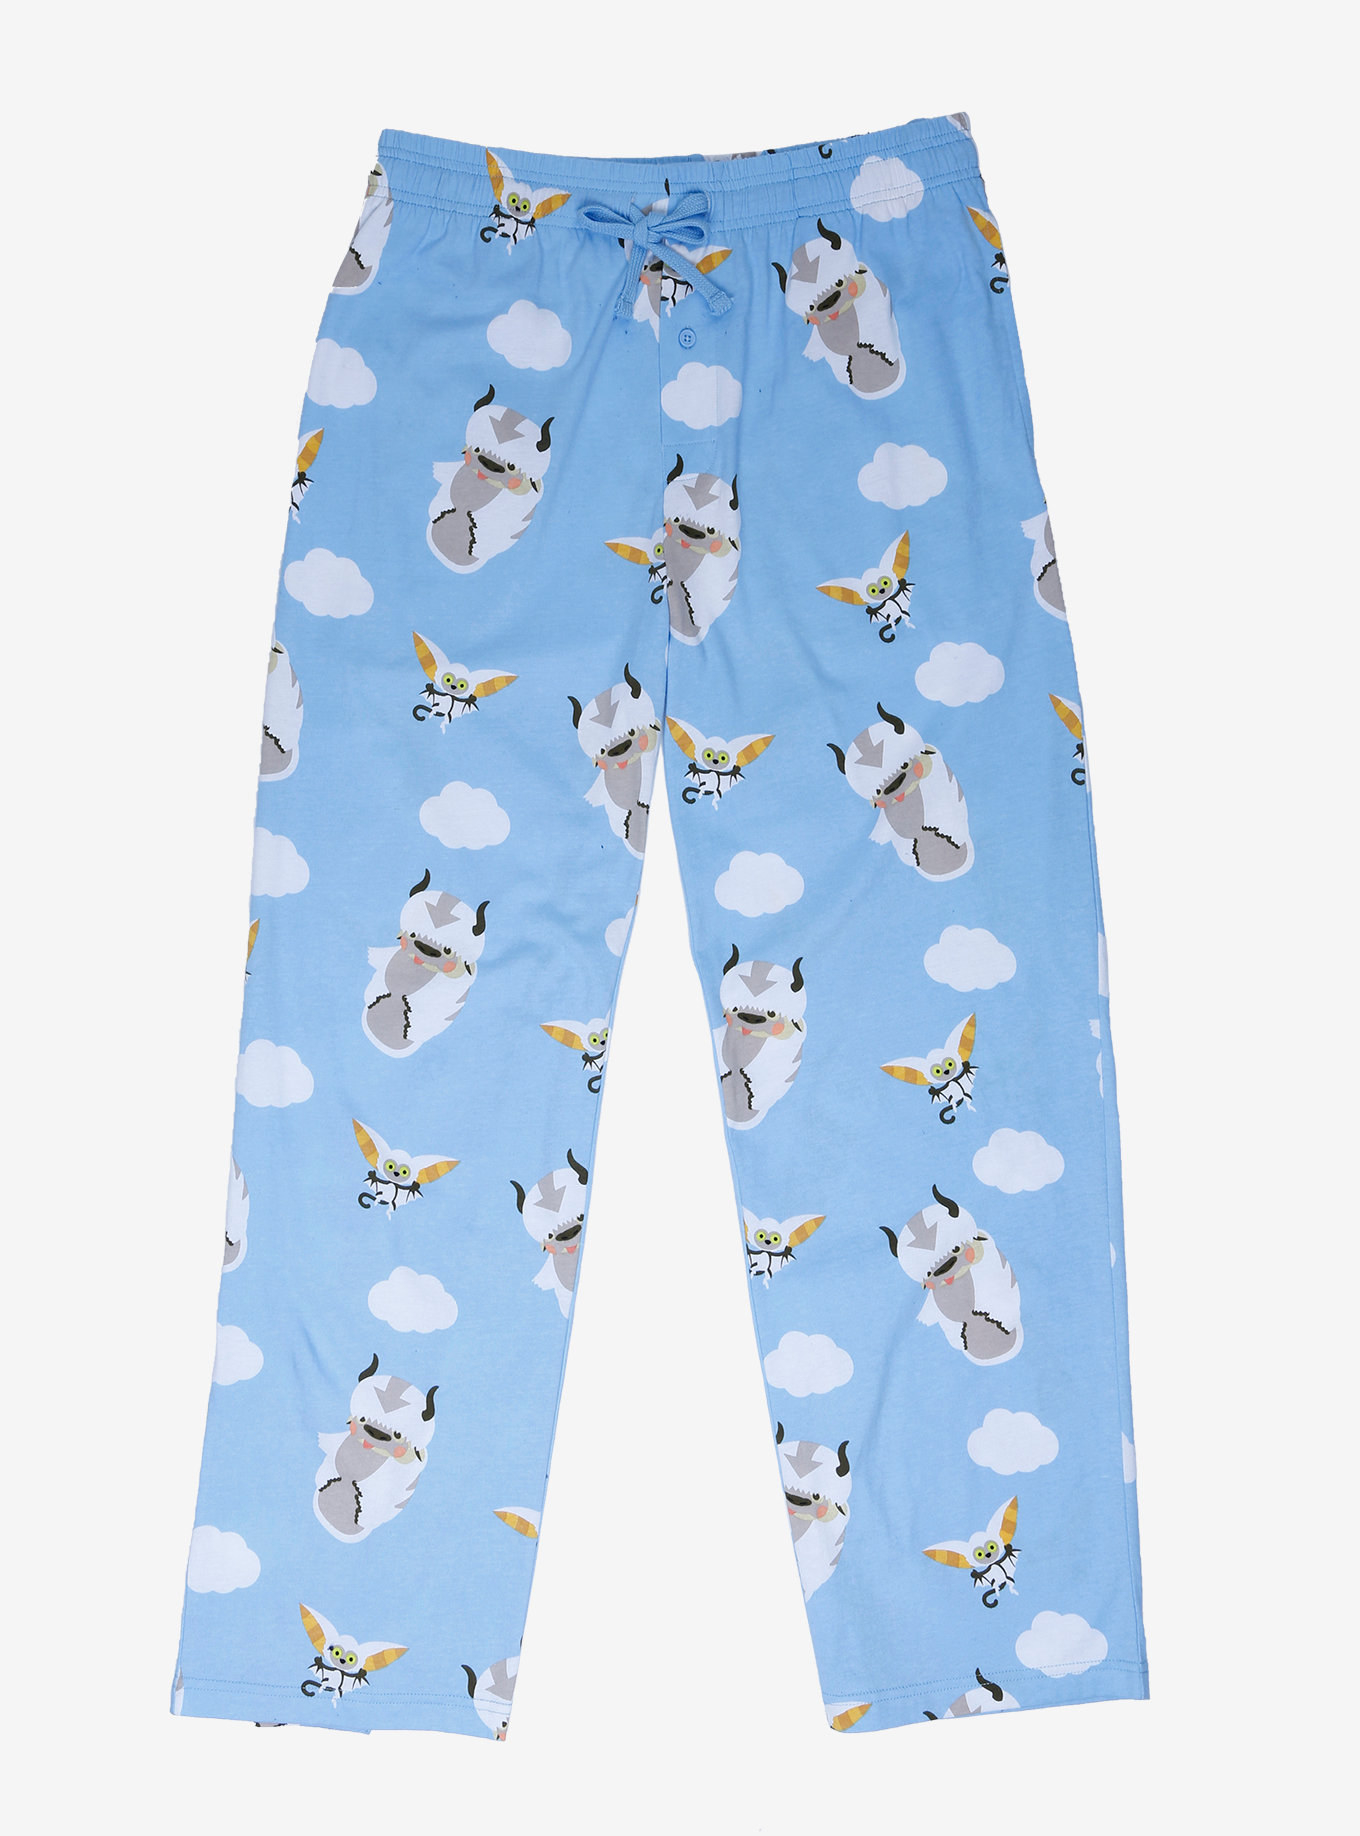 The blue pajama pants printed with clouds, Momo, and Appa